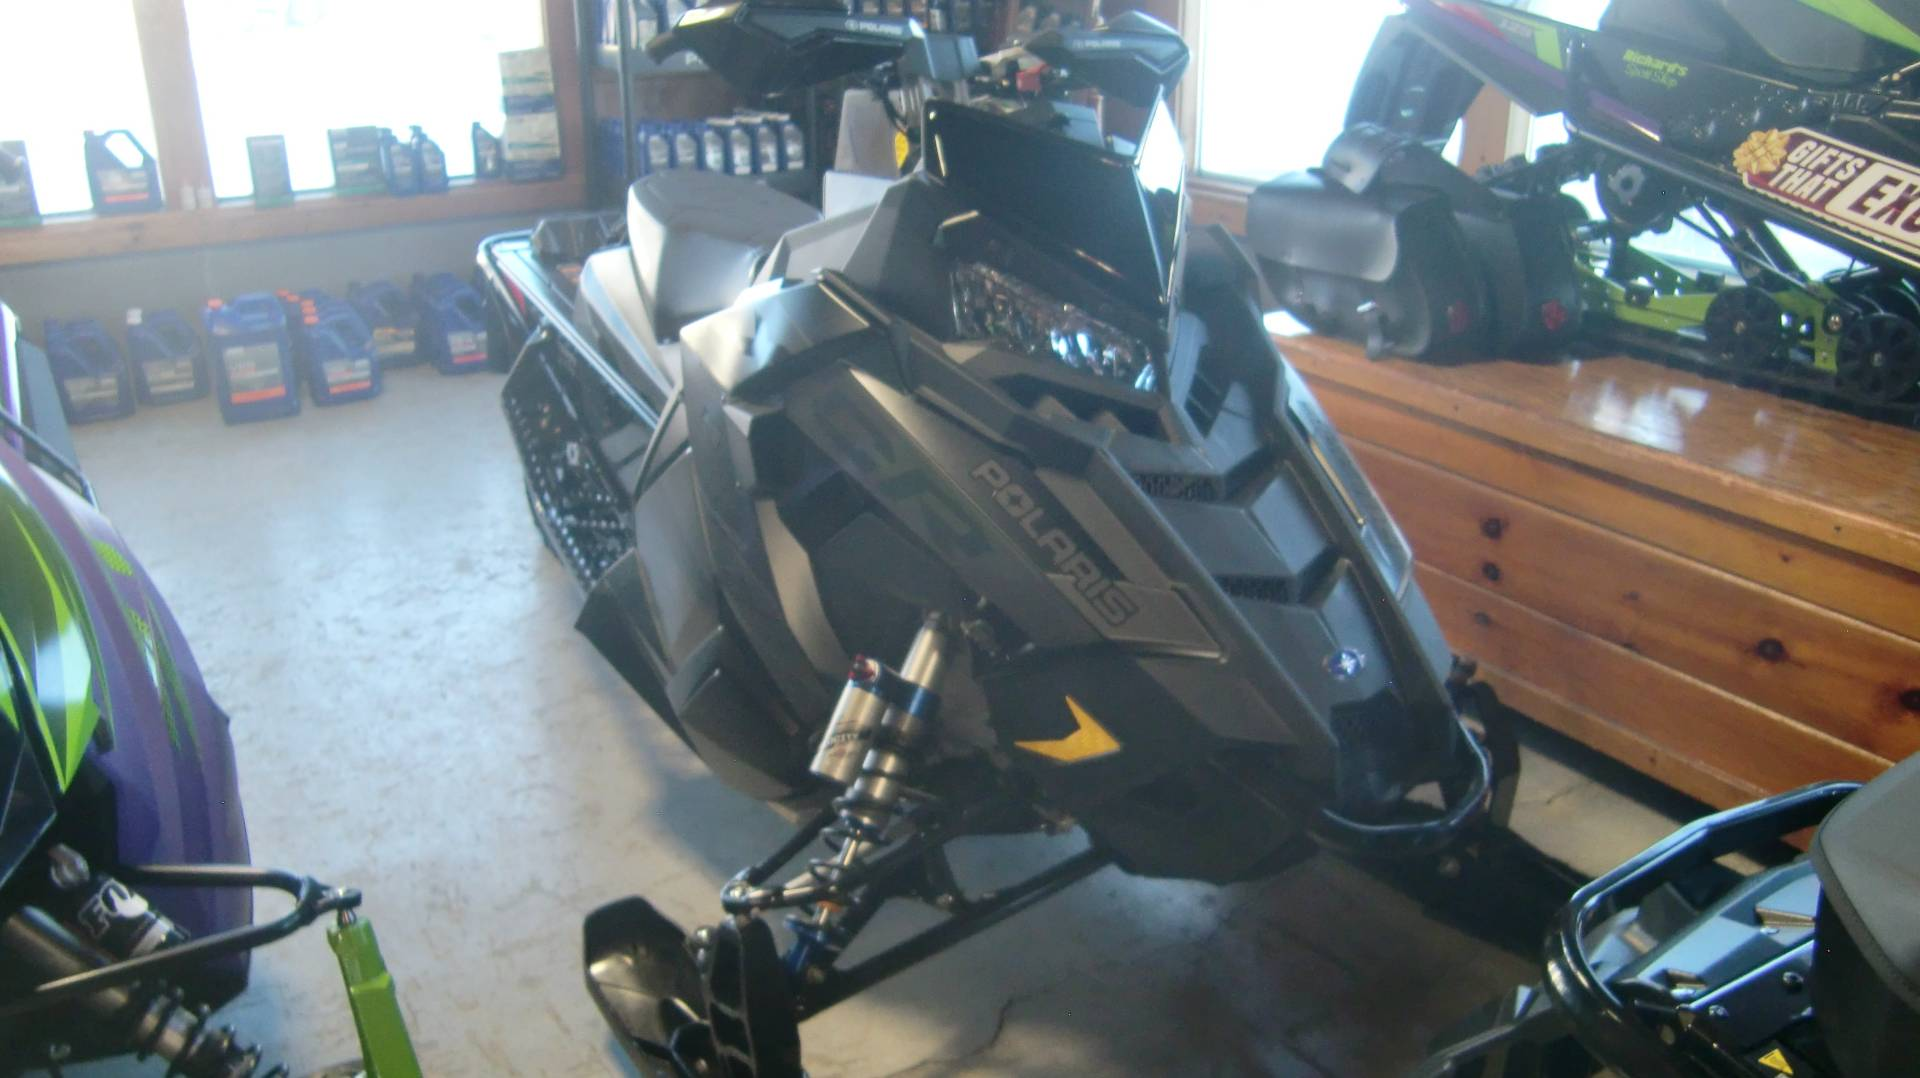 2021 Polaris INDY XCR 850 129 in Lincoln, Maine - Photo 1